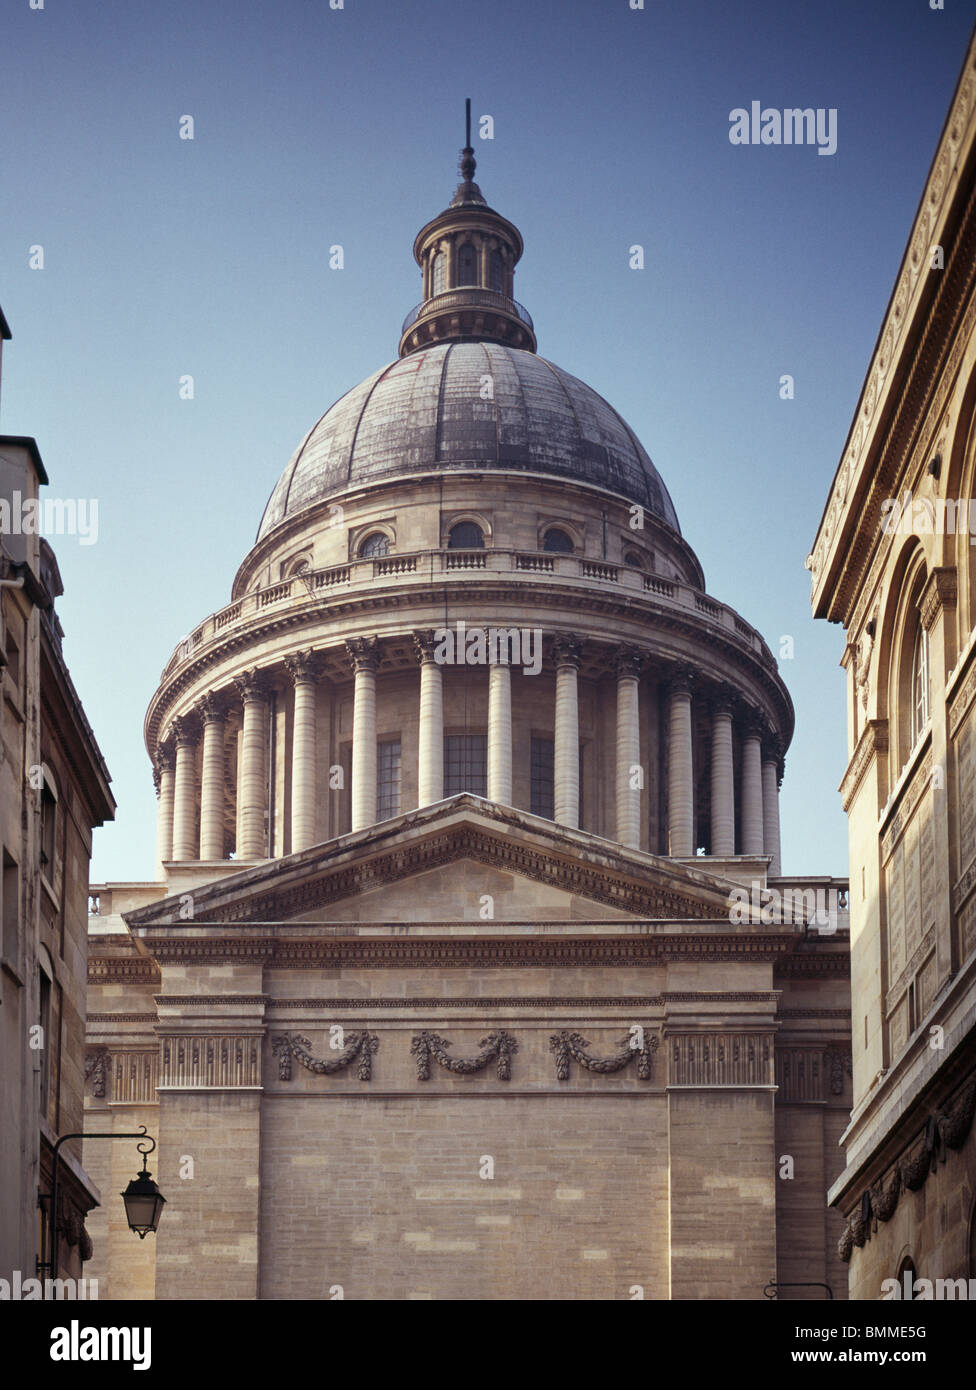 Dome of the Pantheon, Paris, France. Designed by Soufflot, built 1758+ as church of Sainte Genevieve. Stock Photo